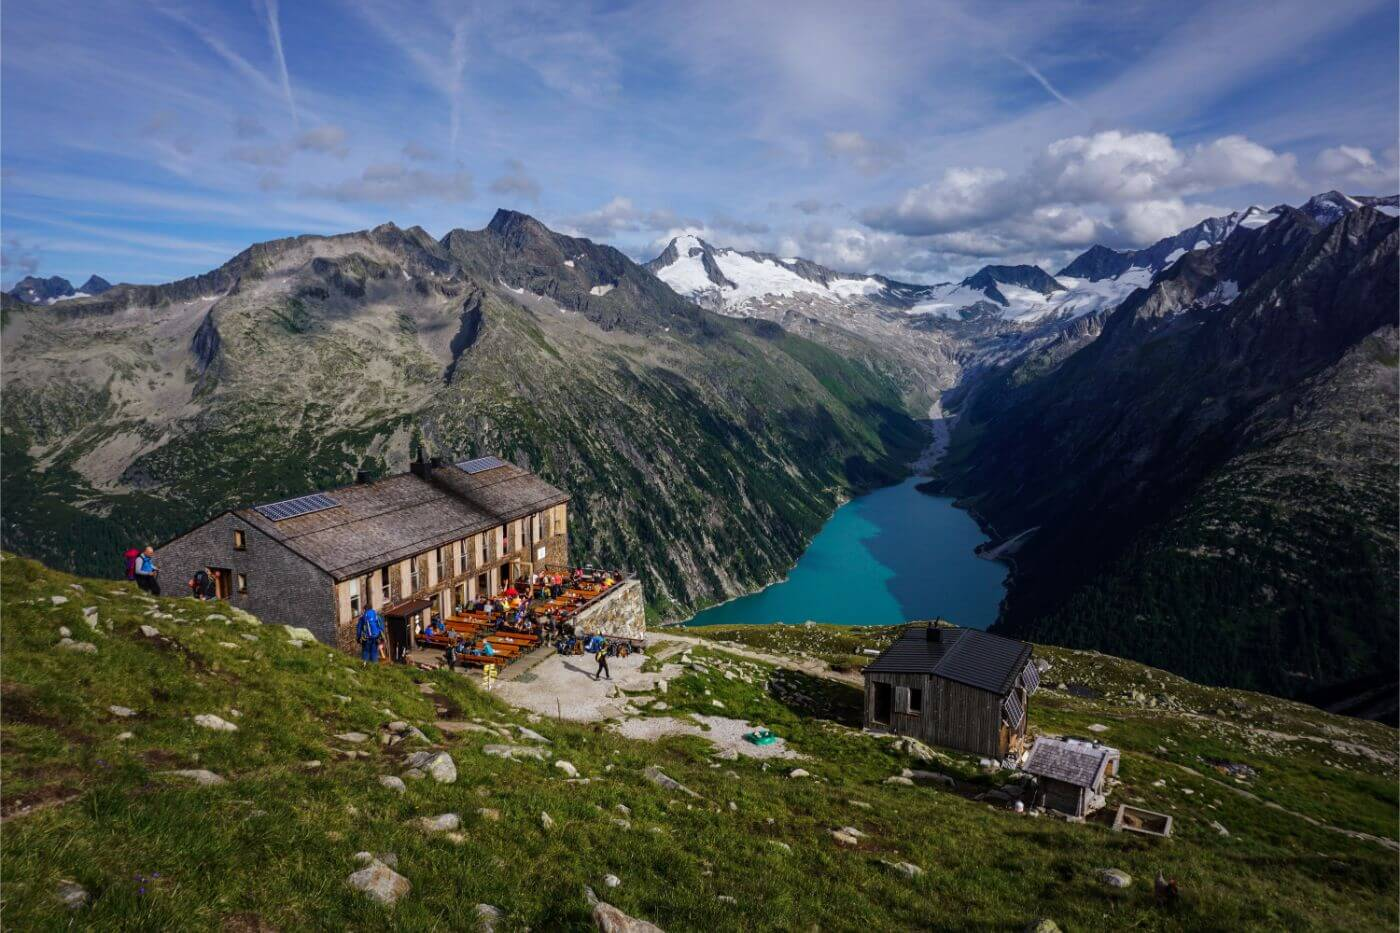 Olperer mountain hut / Olpererhütte, Berlin High Trail, Austria